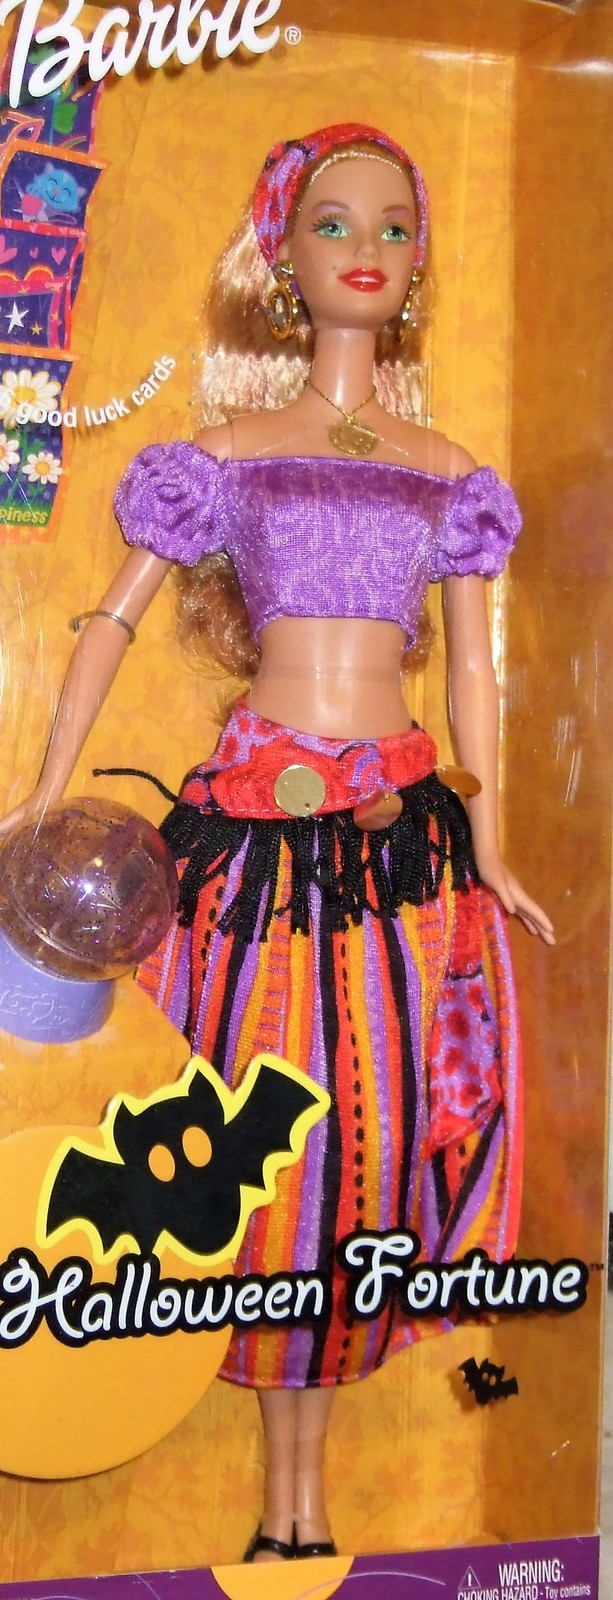 Barbie Doll - Halloween Fortune Barbie Fortune Teller Doll Target Exclusive image 4